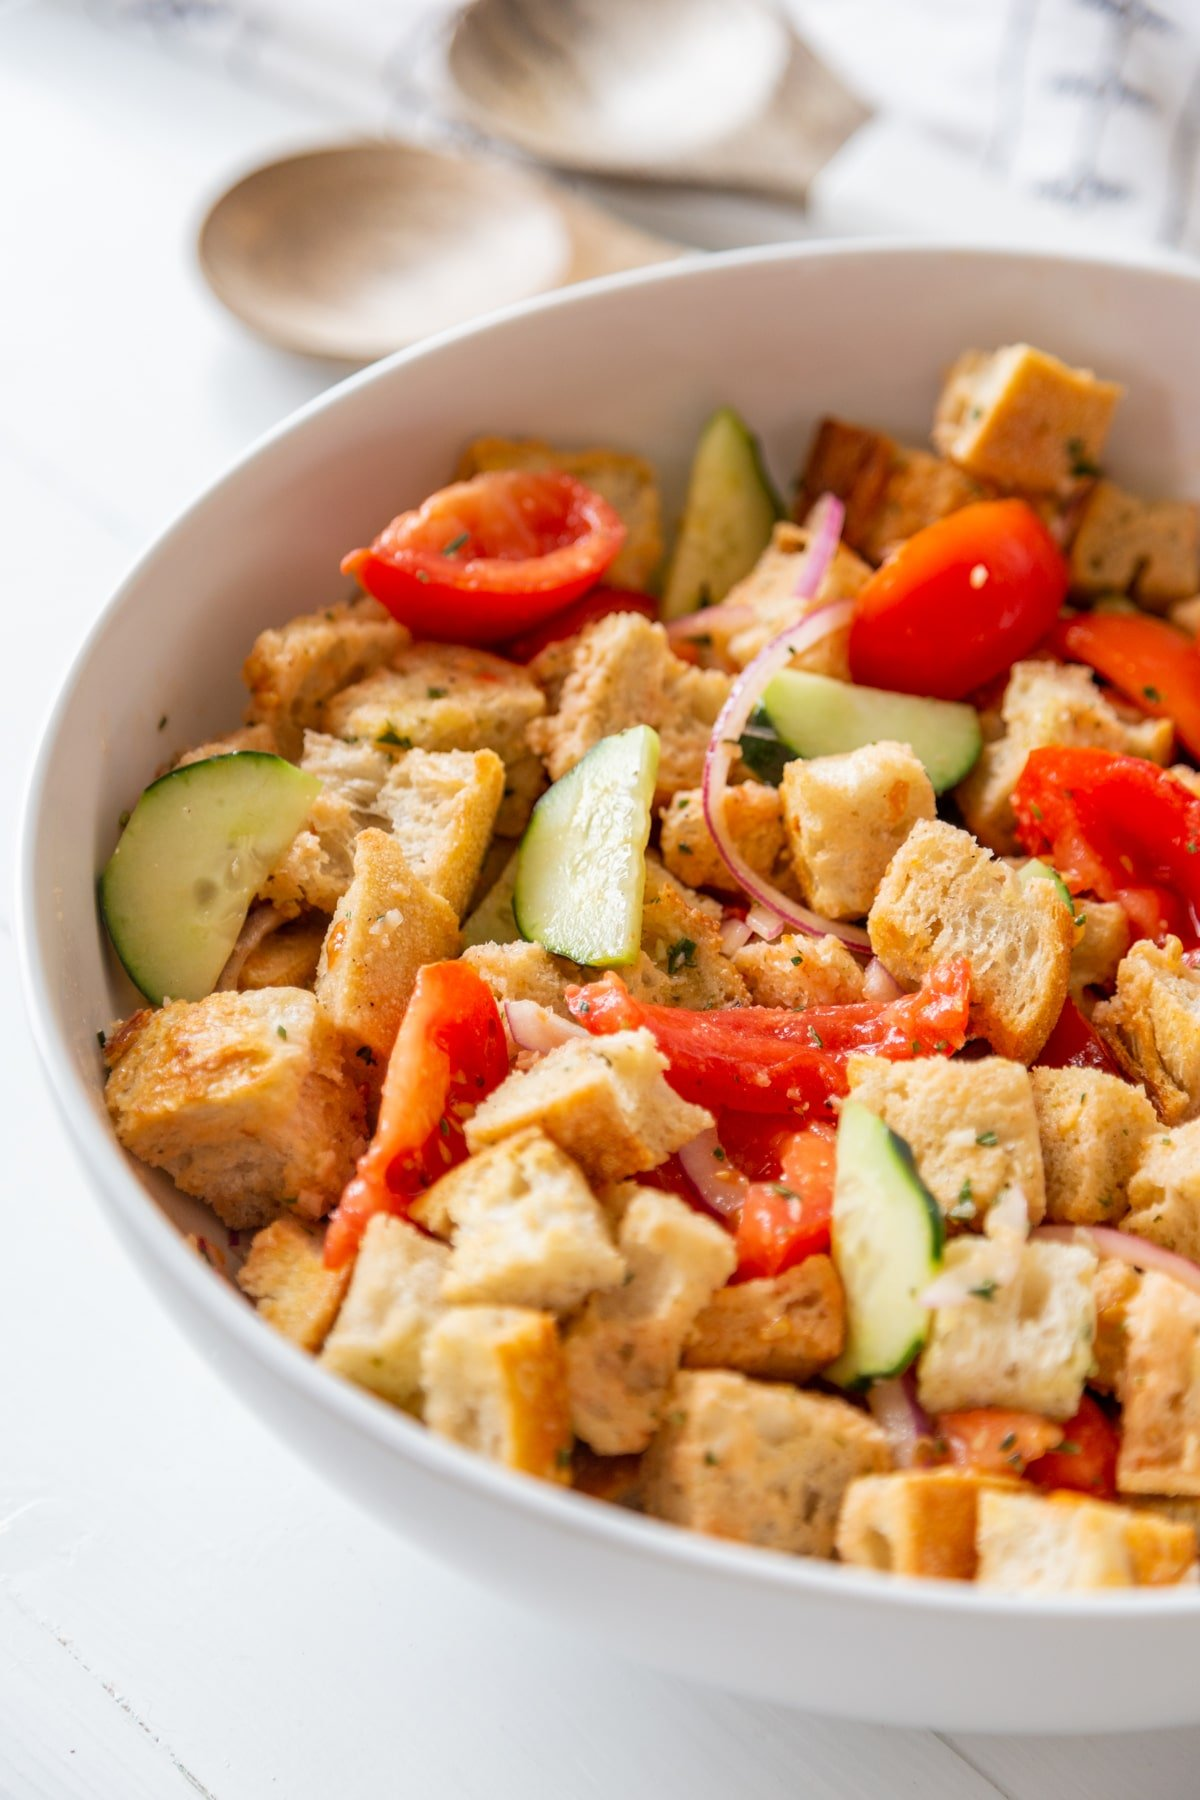 A large white bowl with Panzanella salad and white and wood serving spoons in the background.